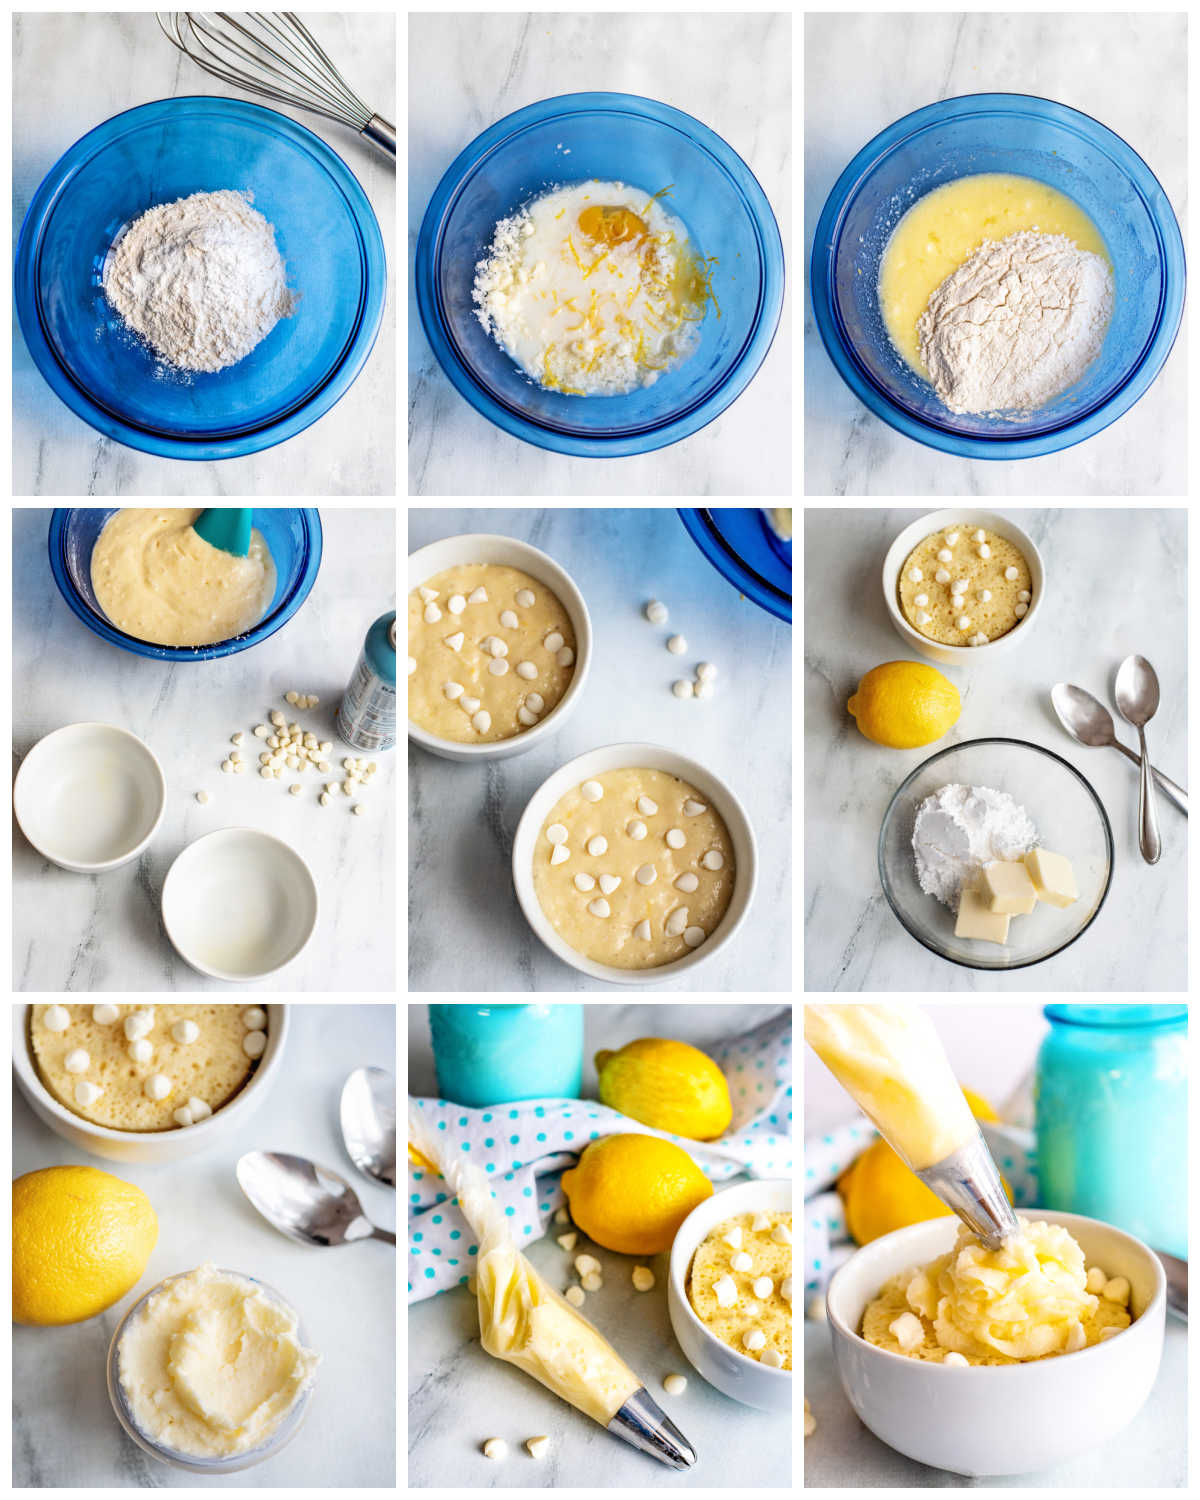 A picture collage of how to make this Lemon Mug Cake recipe.